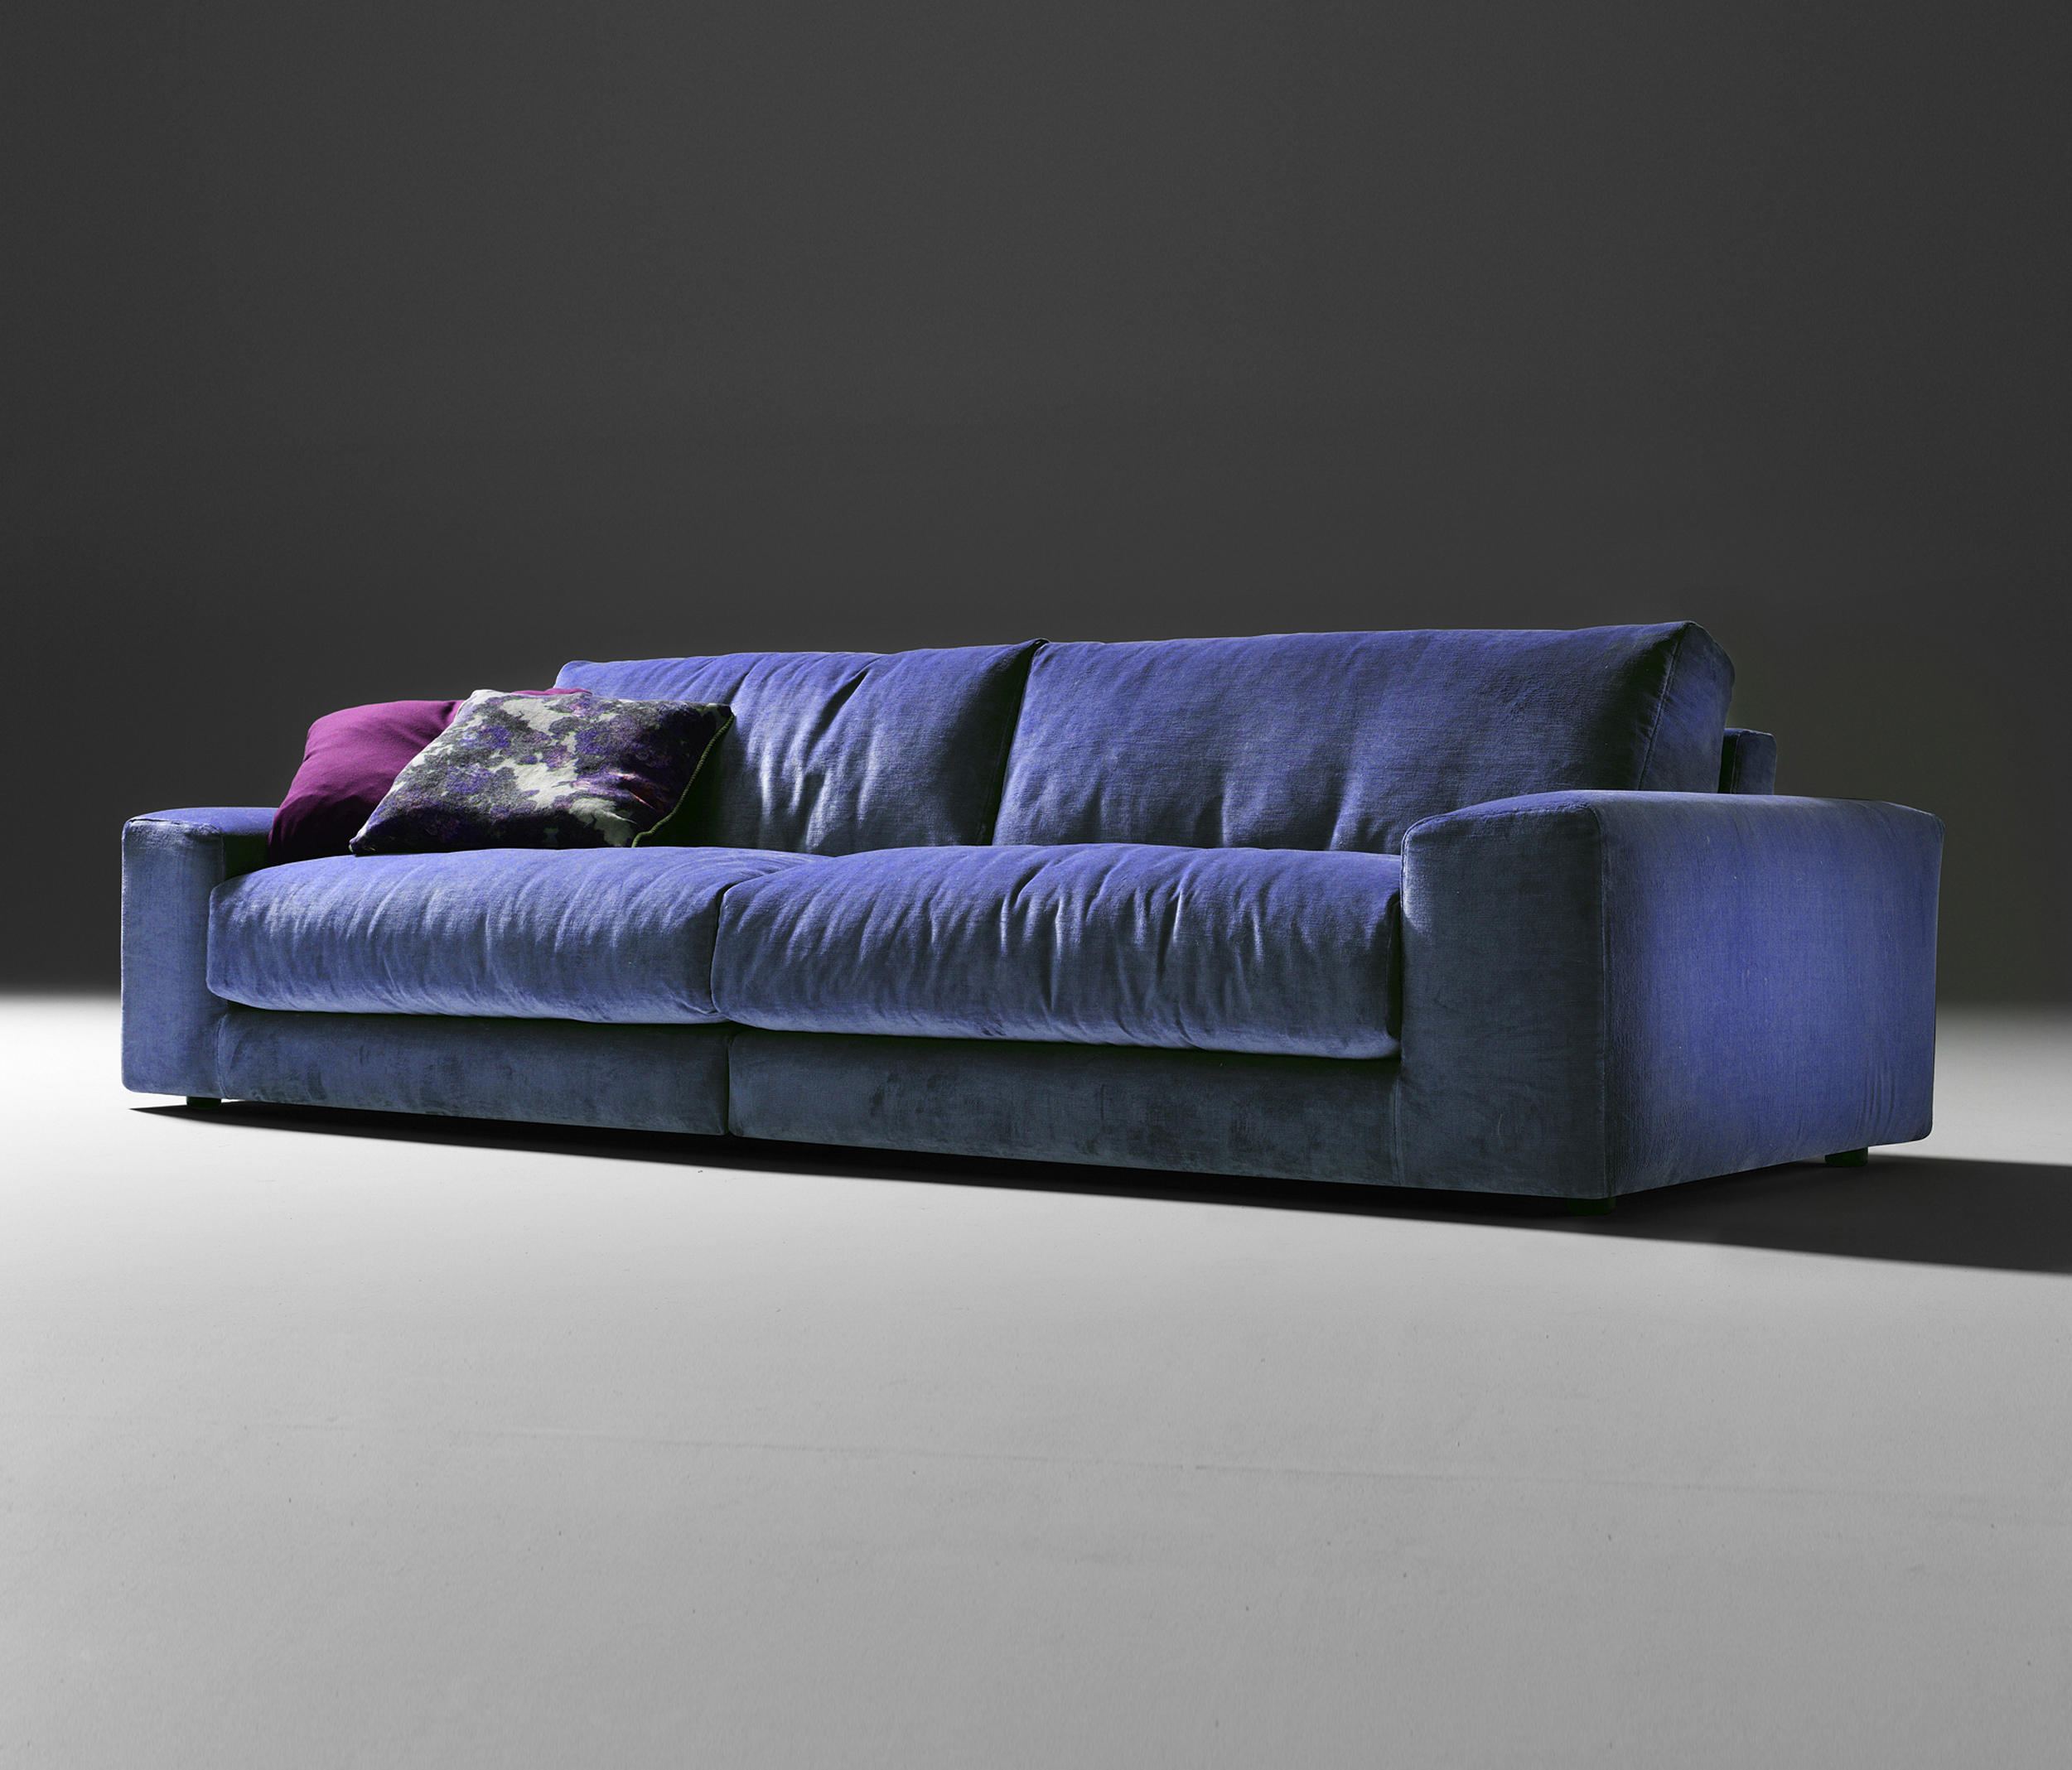 Miraculous Dante Sofa Sofas From Black Tie Architonic Alphanode Cool Chair Designs And Ideas Alphanodeonline